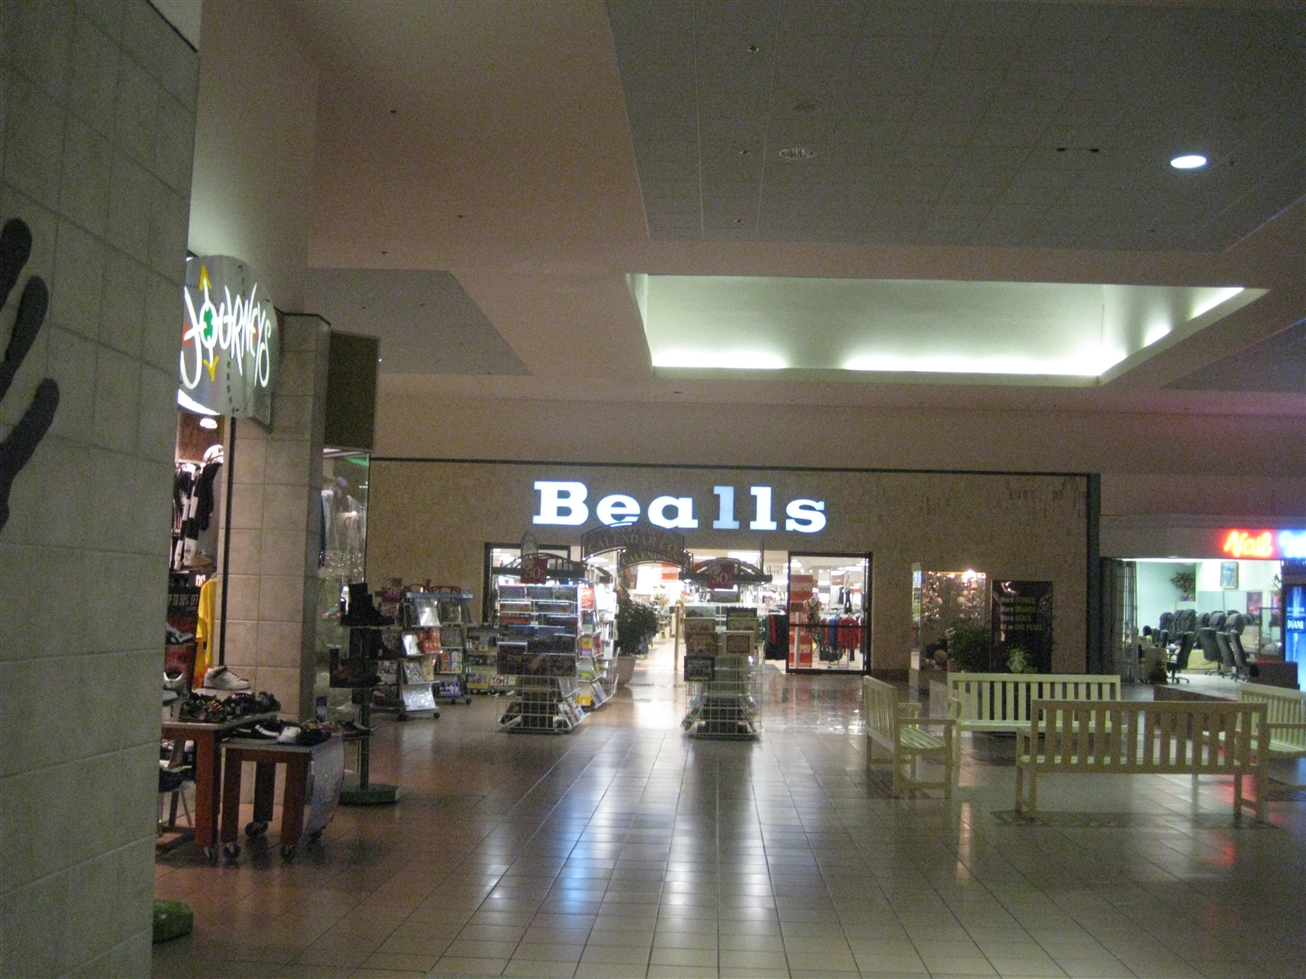 Midway Mall Bealls in Sherman, TX